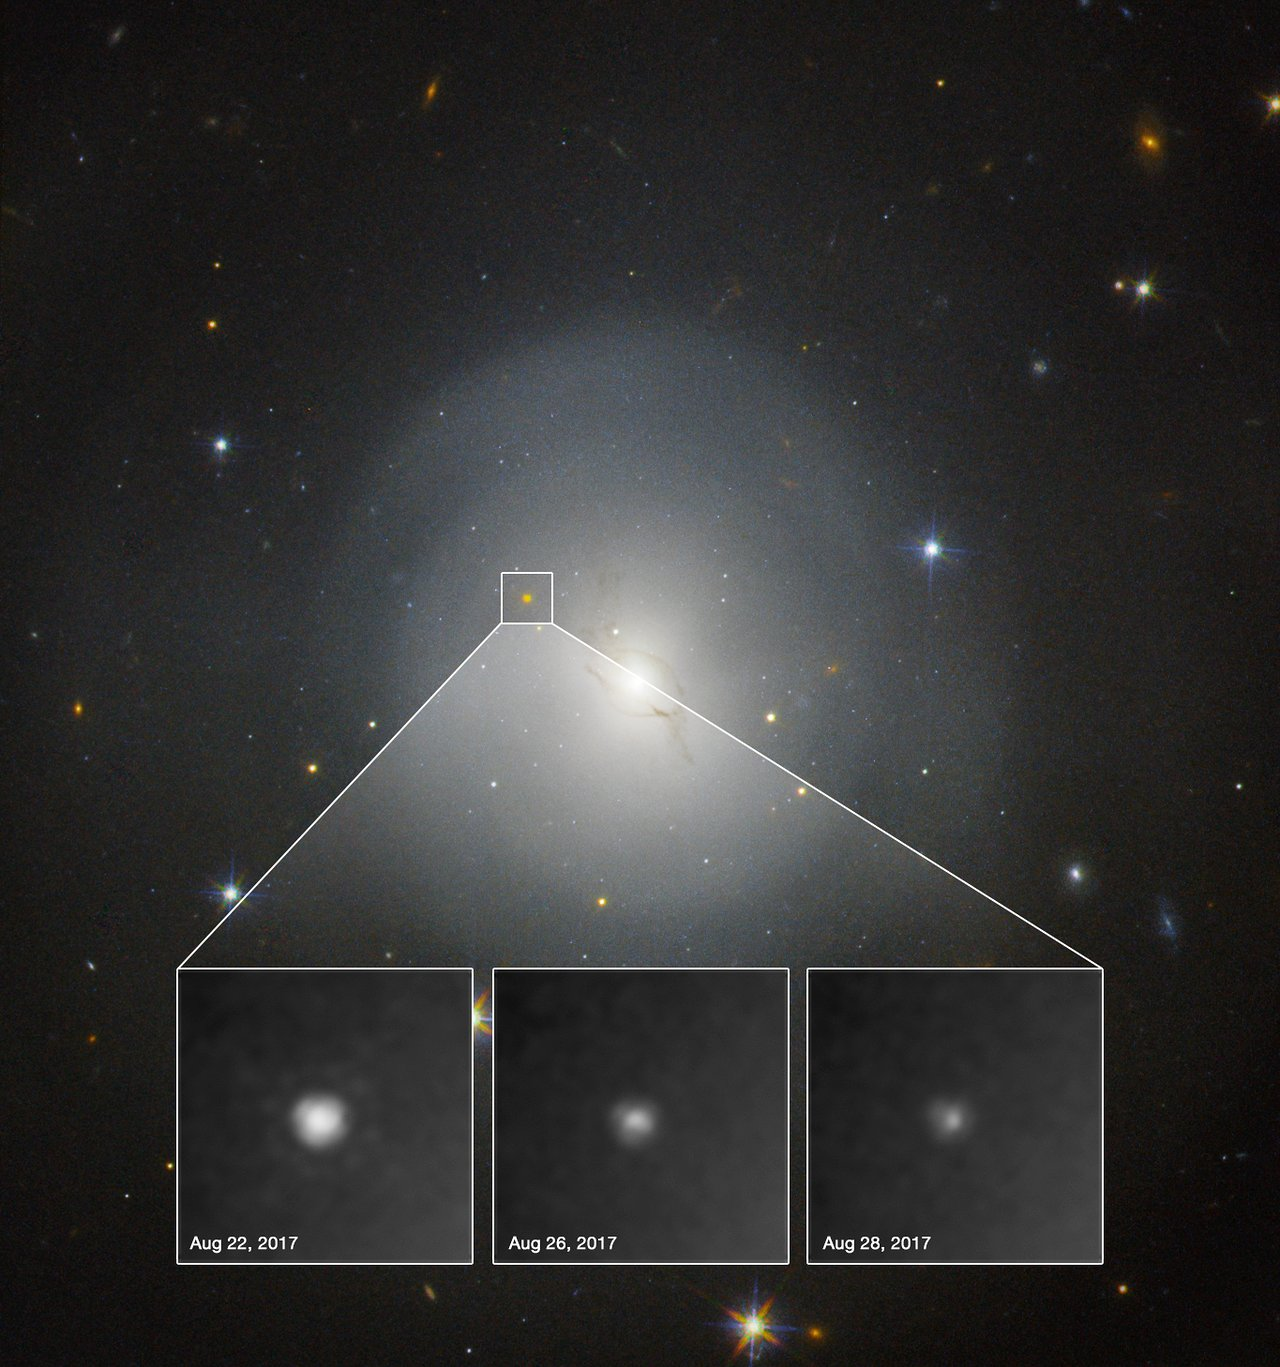 Science Release: Hubble observes source of gravitational waves for the first time